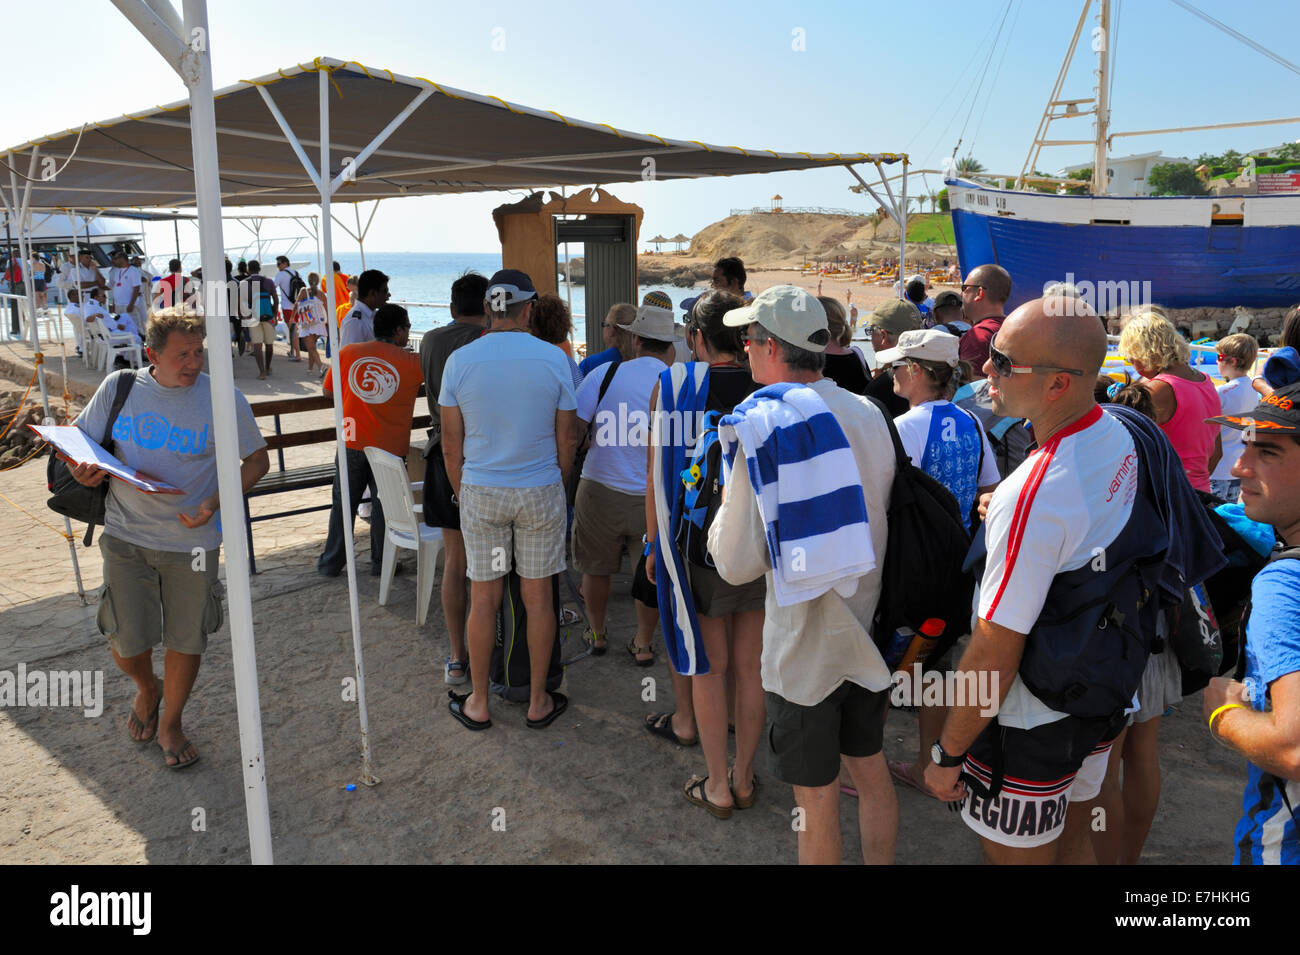 Scuba divers queuing for security checks before boarding boats at 'Sharks Bay' in Sharm El Sheikh by the - Stock Image